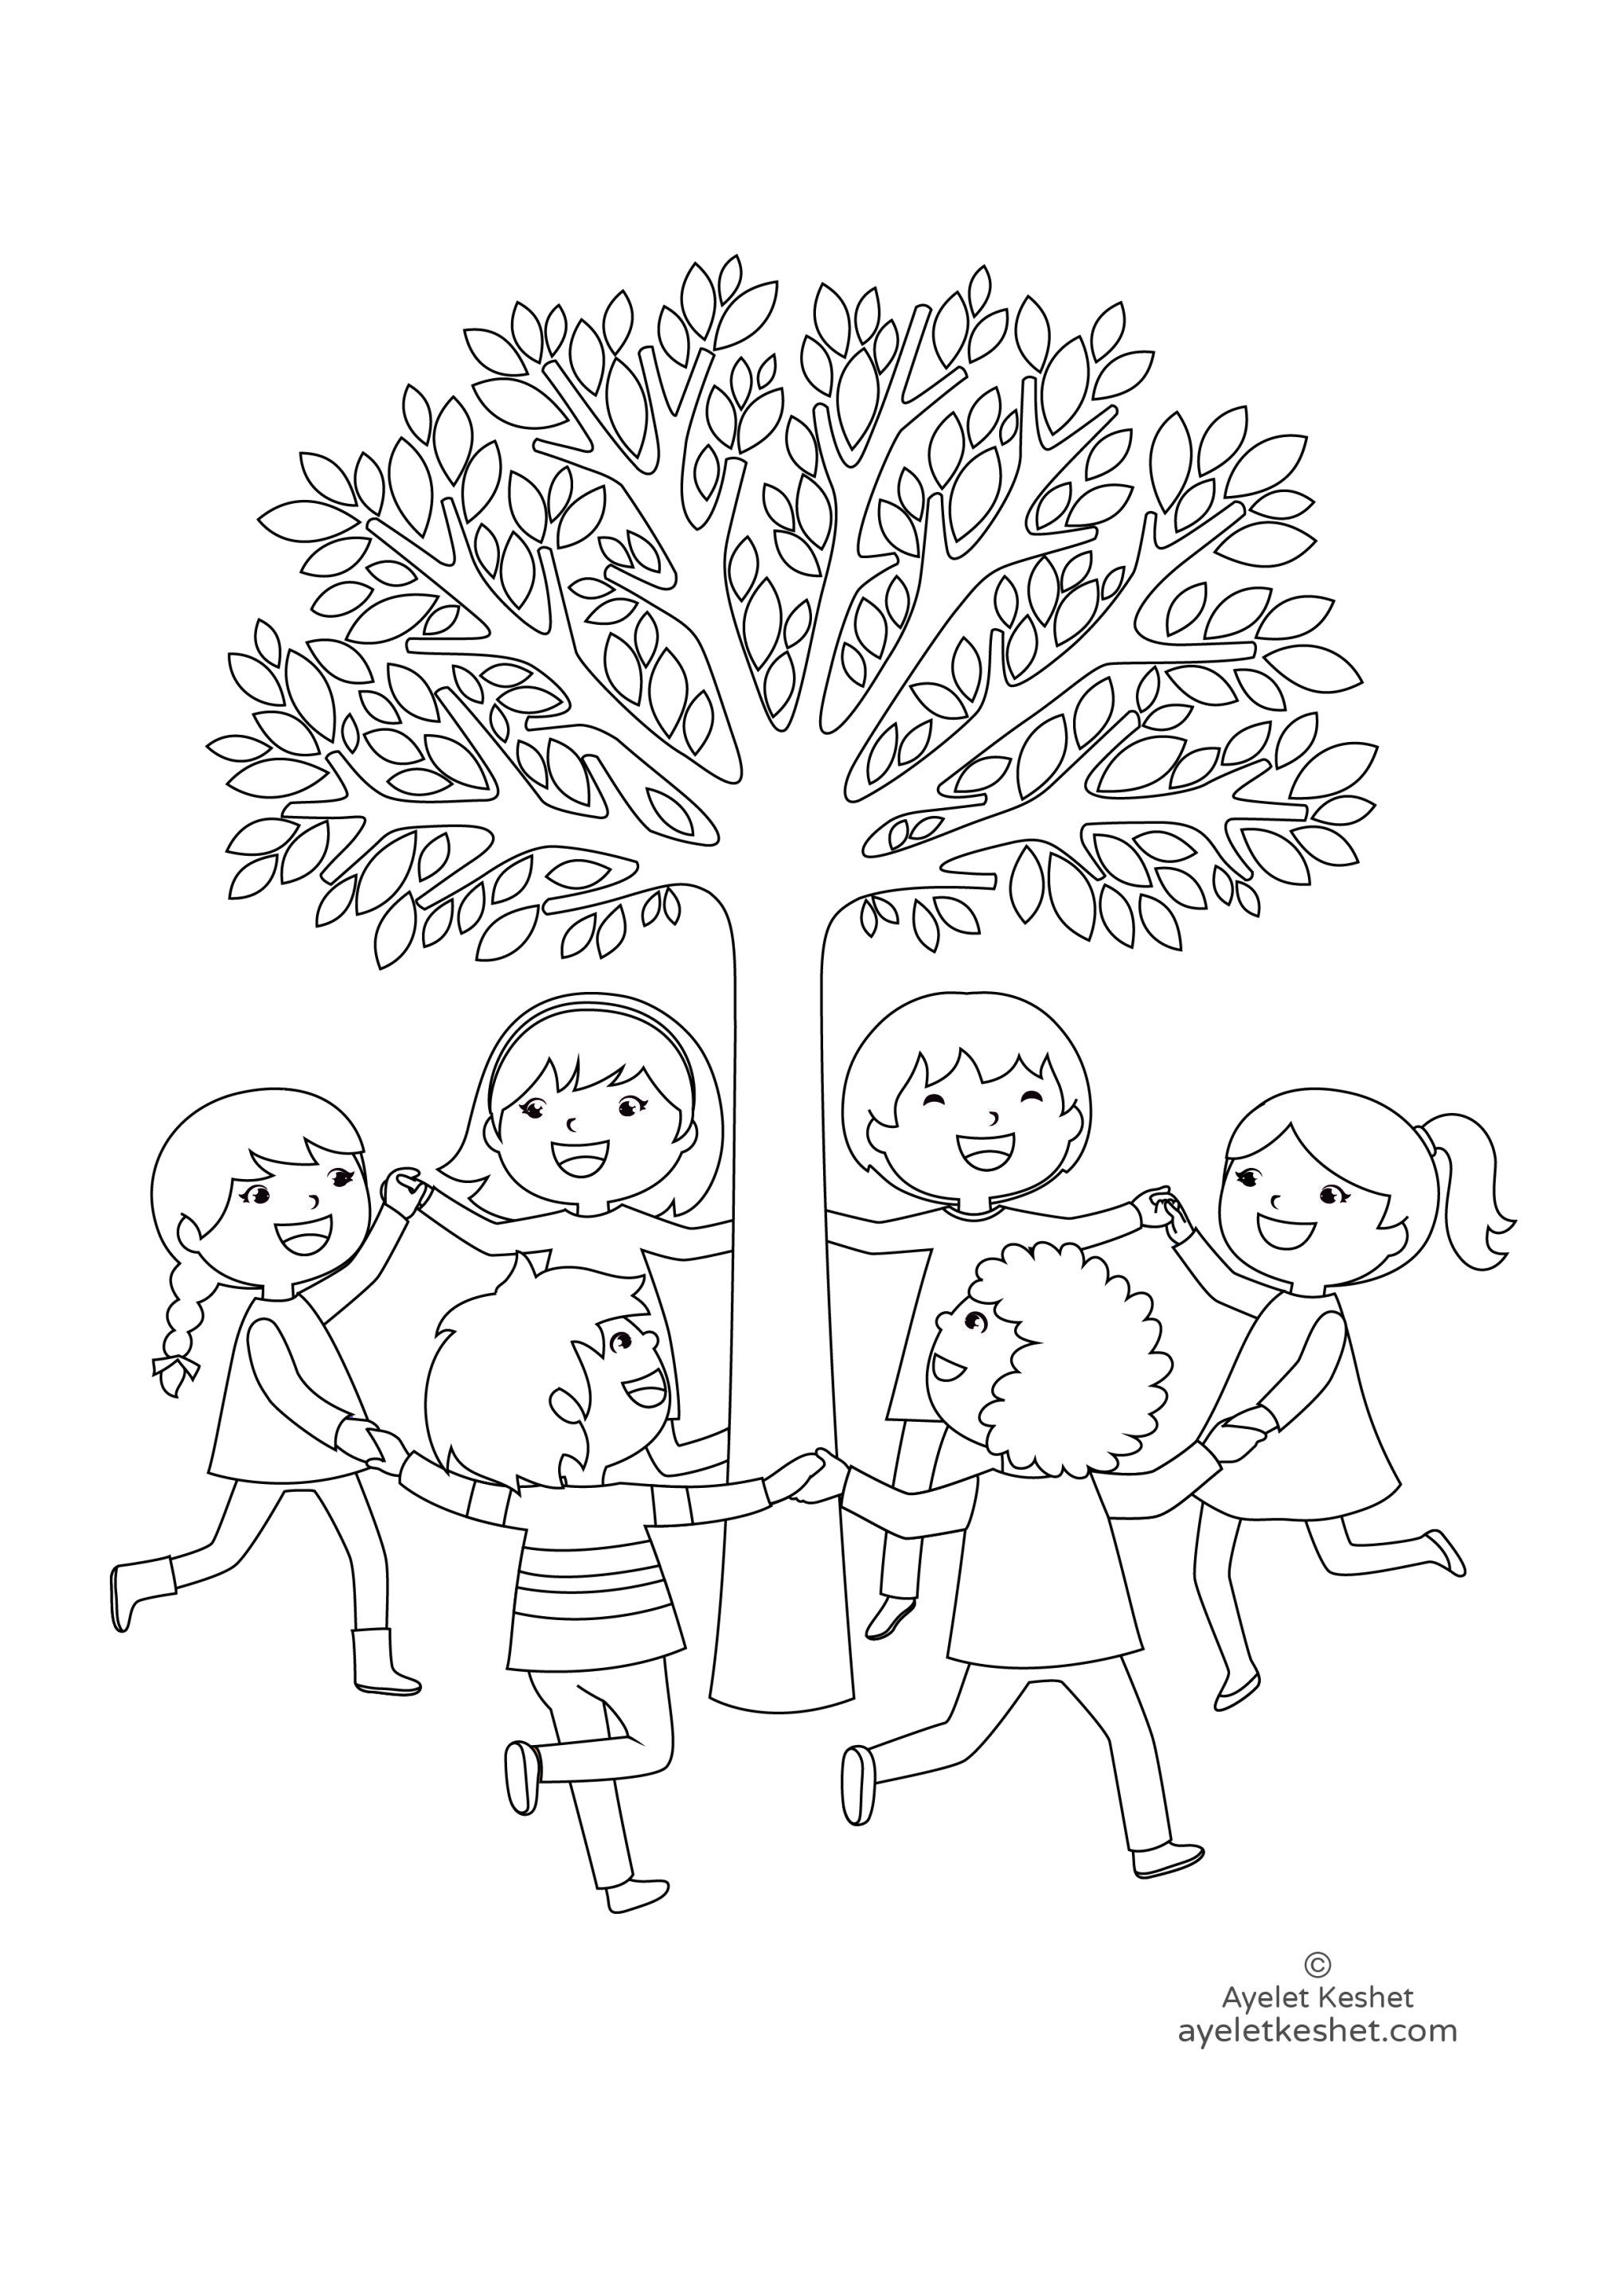 Free Coloring Pages About Friendship Preschool Coloring Pages